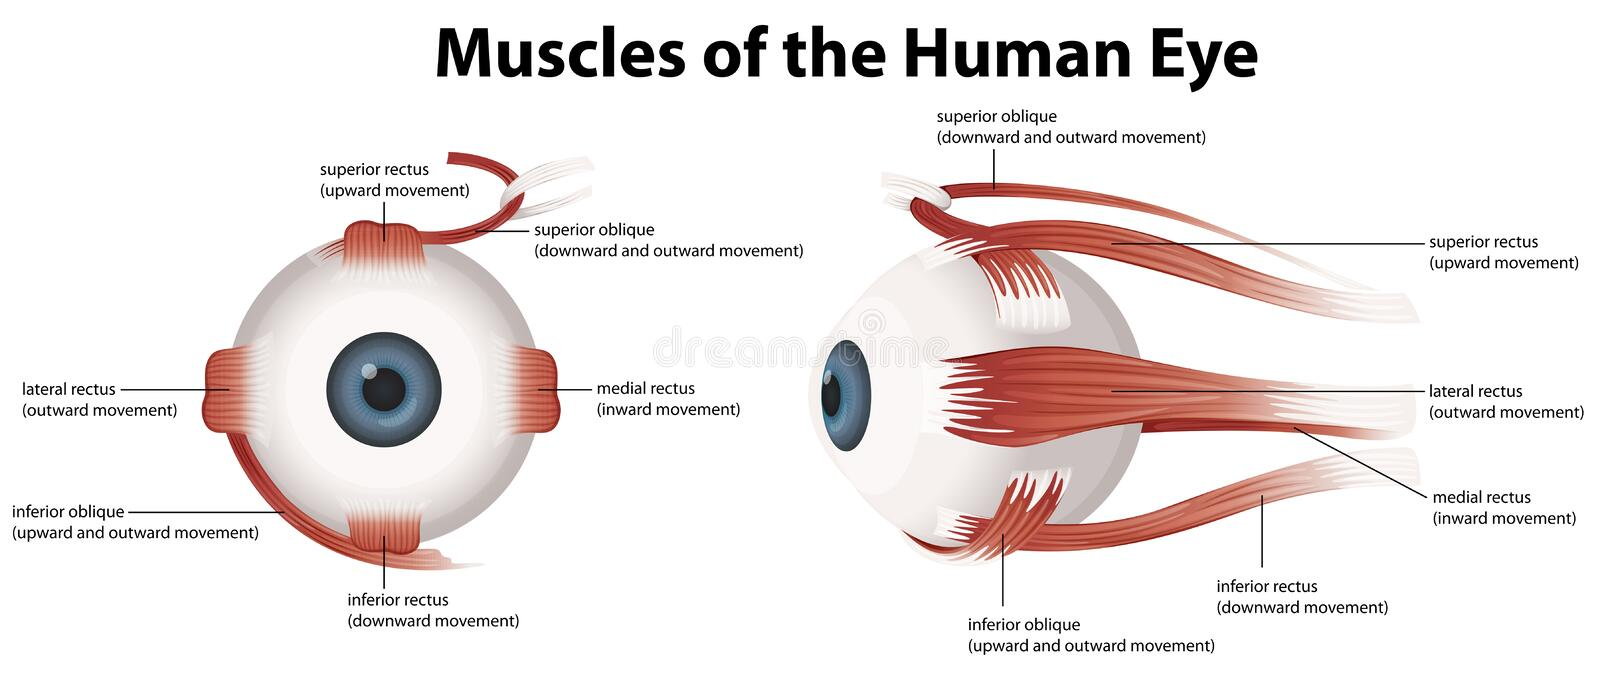 Muscles of the Human Eye. Illustration of the muscles of the human eye vector illustration